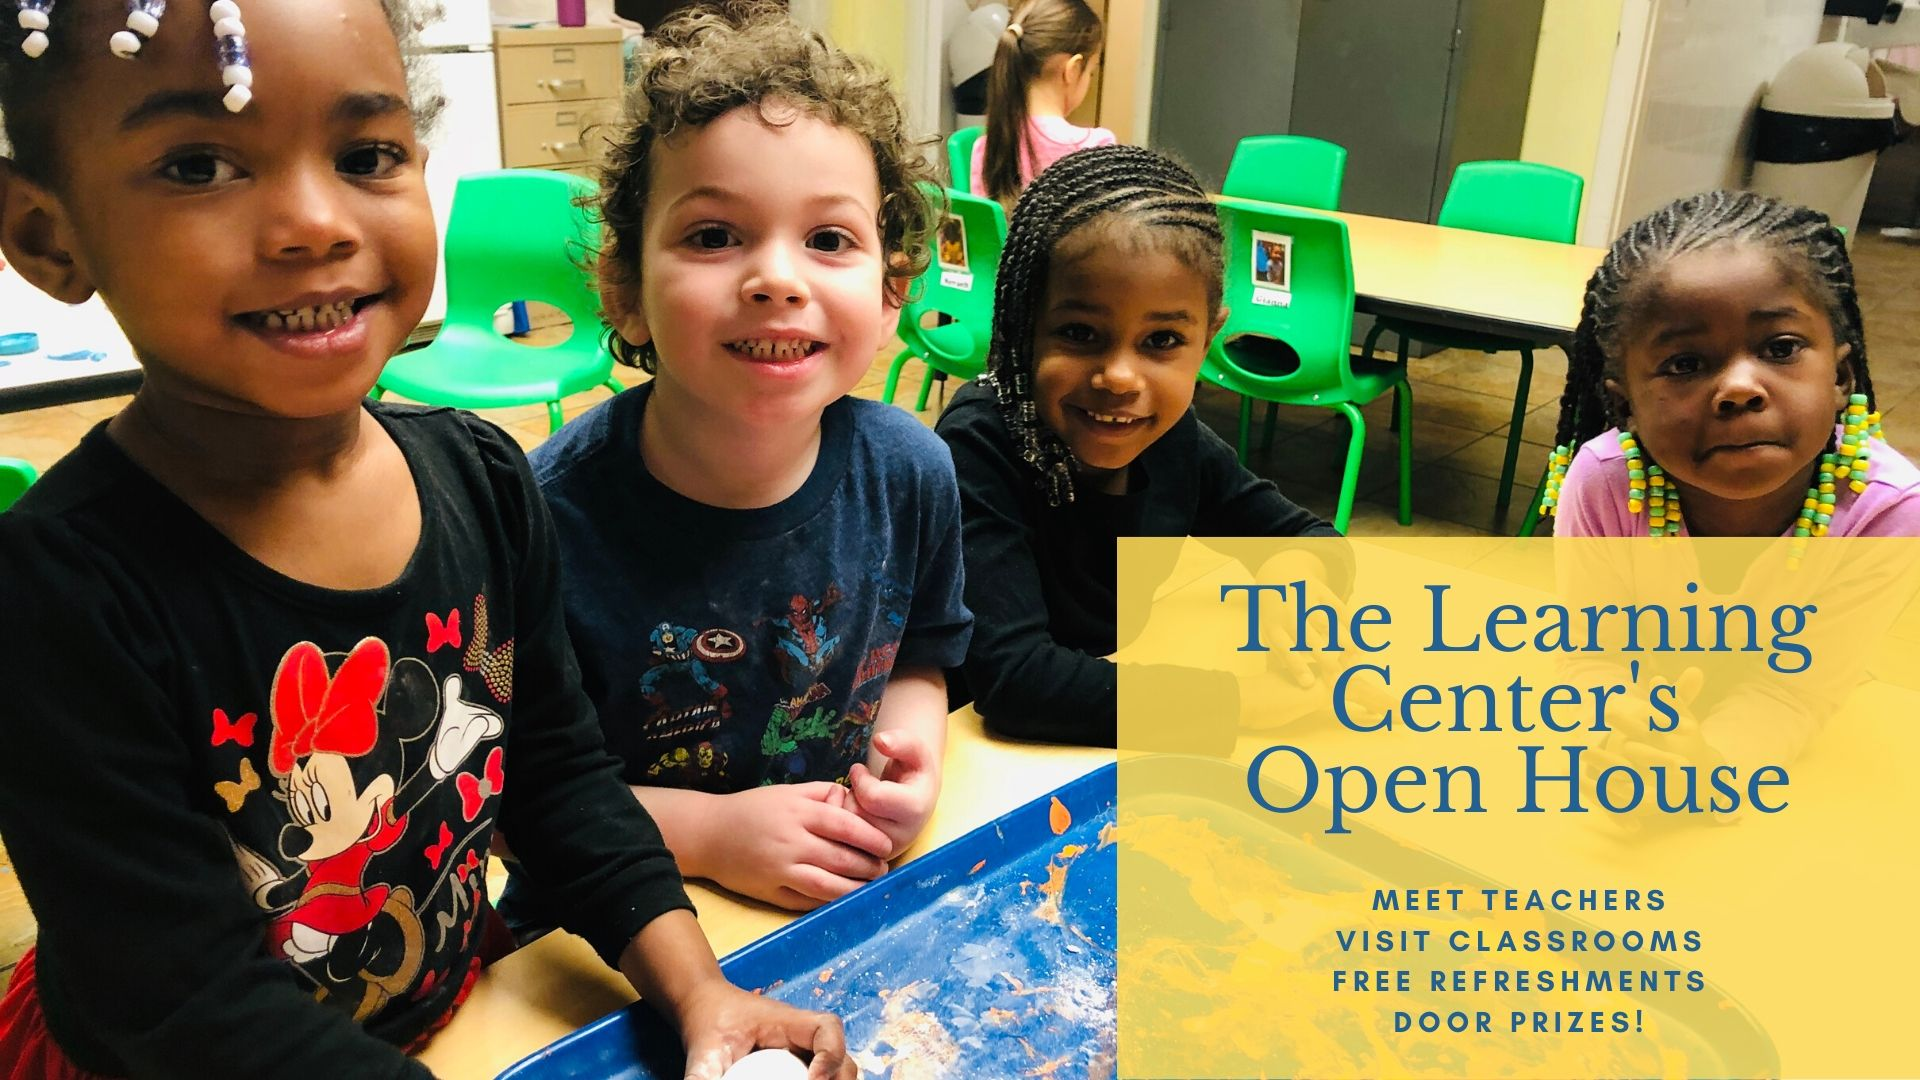 The Learning Center Open House event